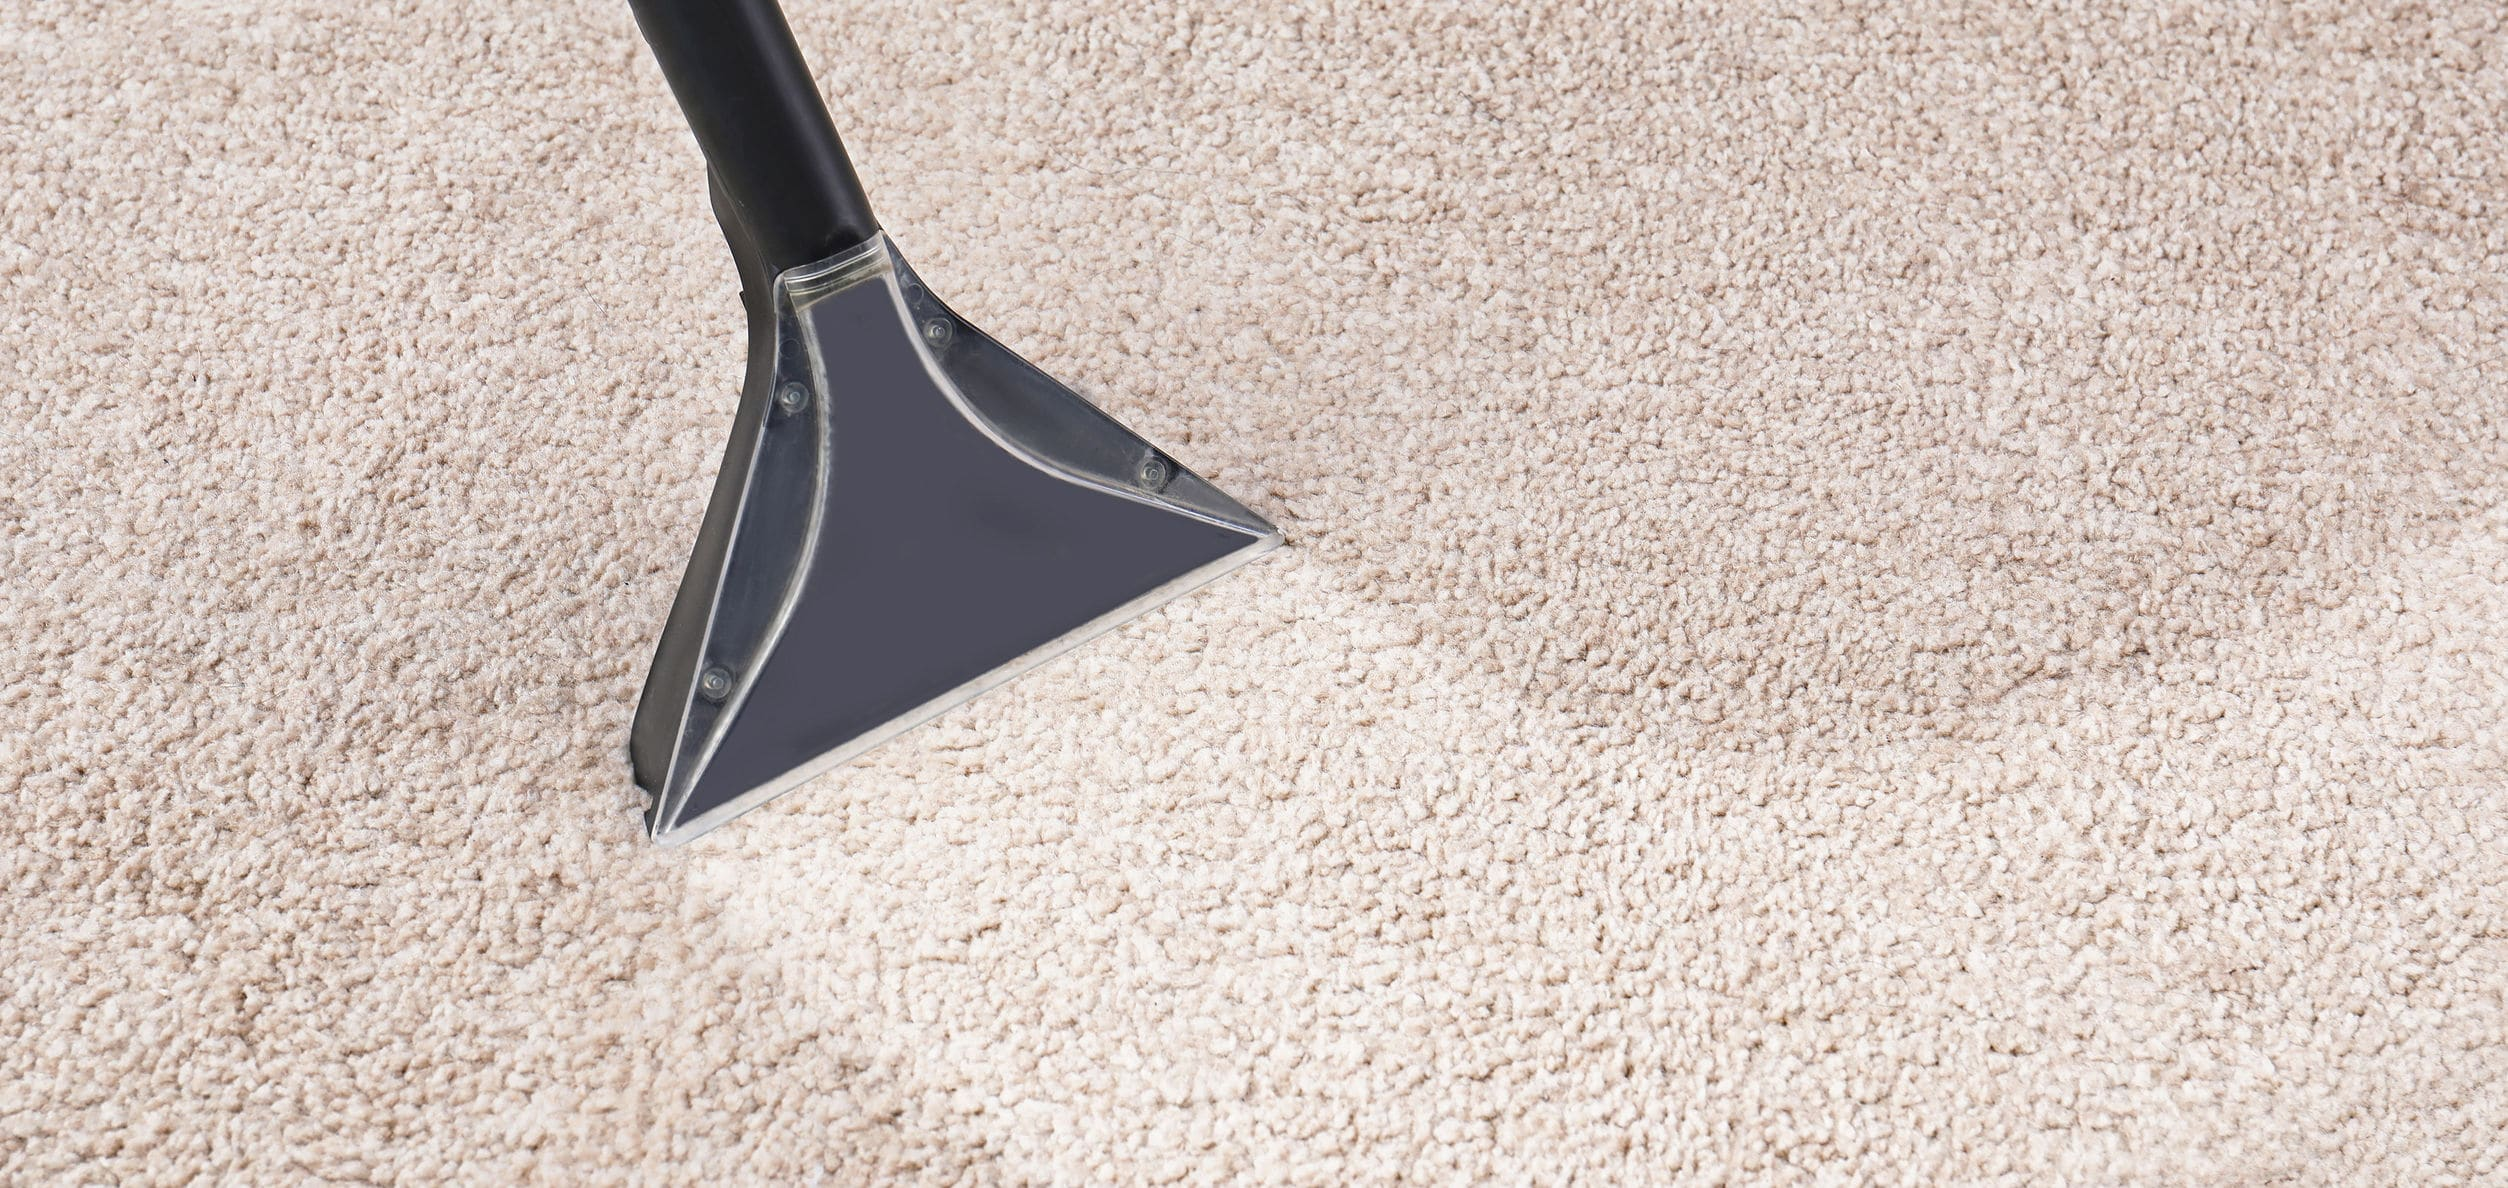 Closeup of carpet cleaner removing moisture from carpet